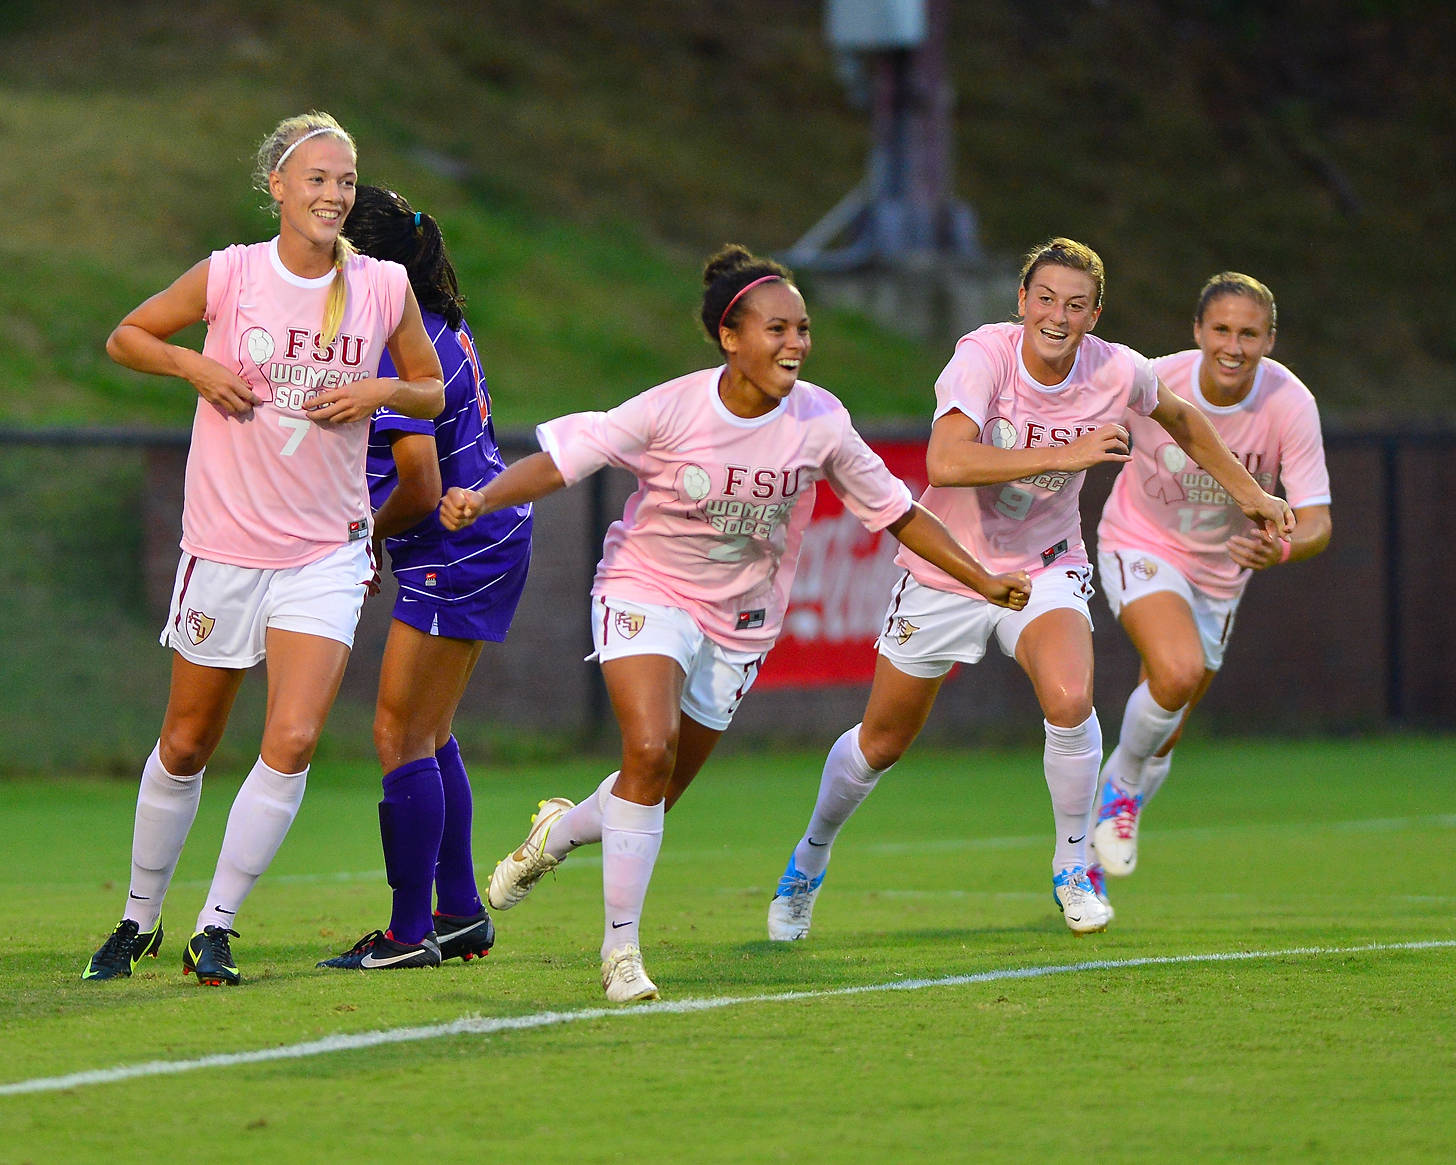 Ines Jaurena celebrates with her teammates after scoring the first goal of the game against Clemson.